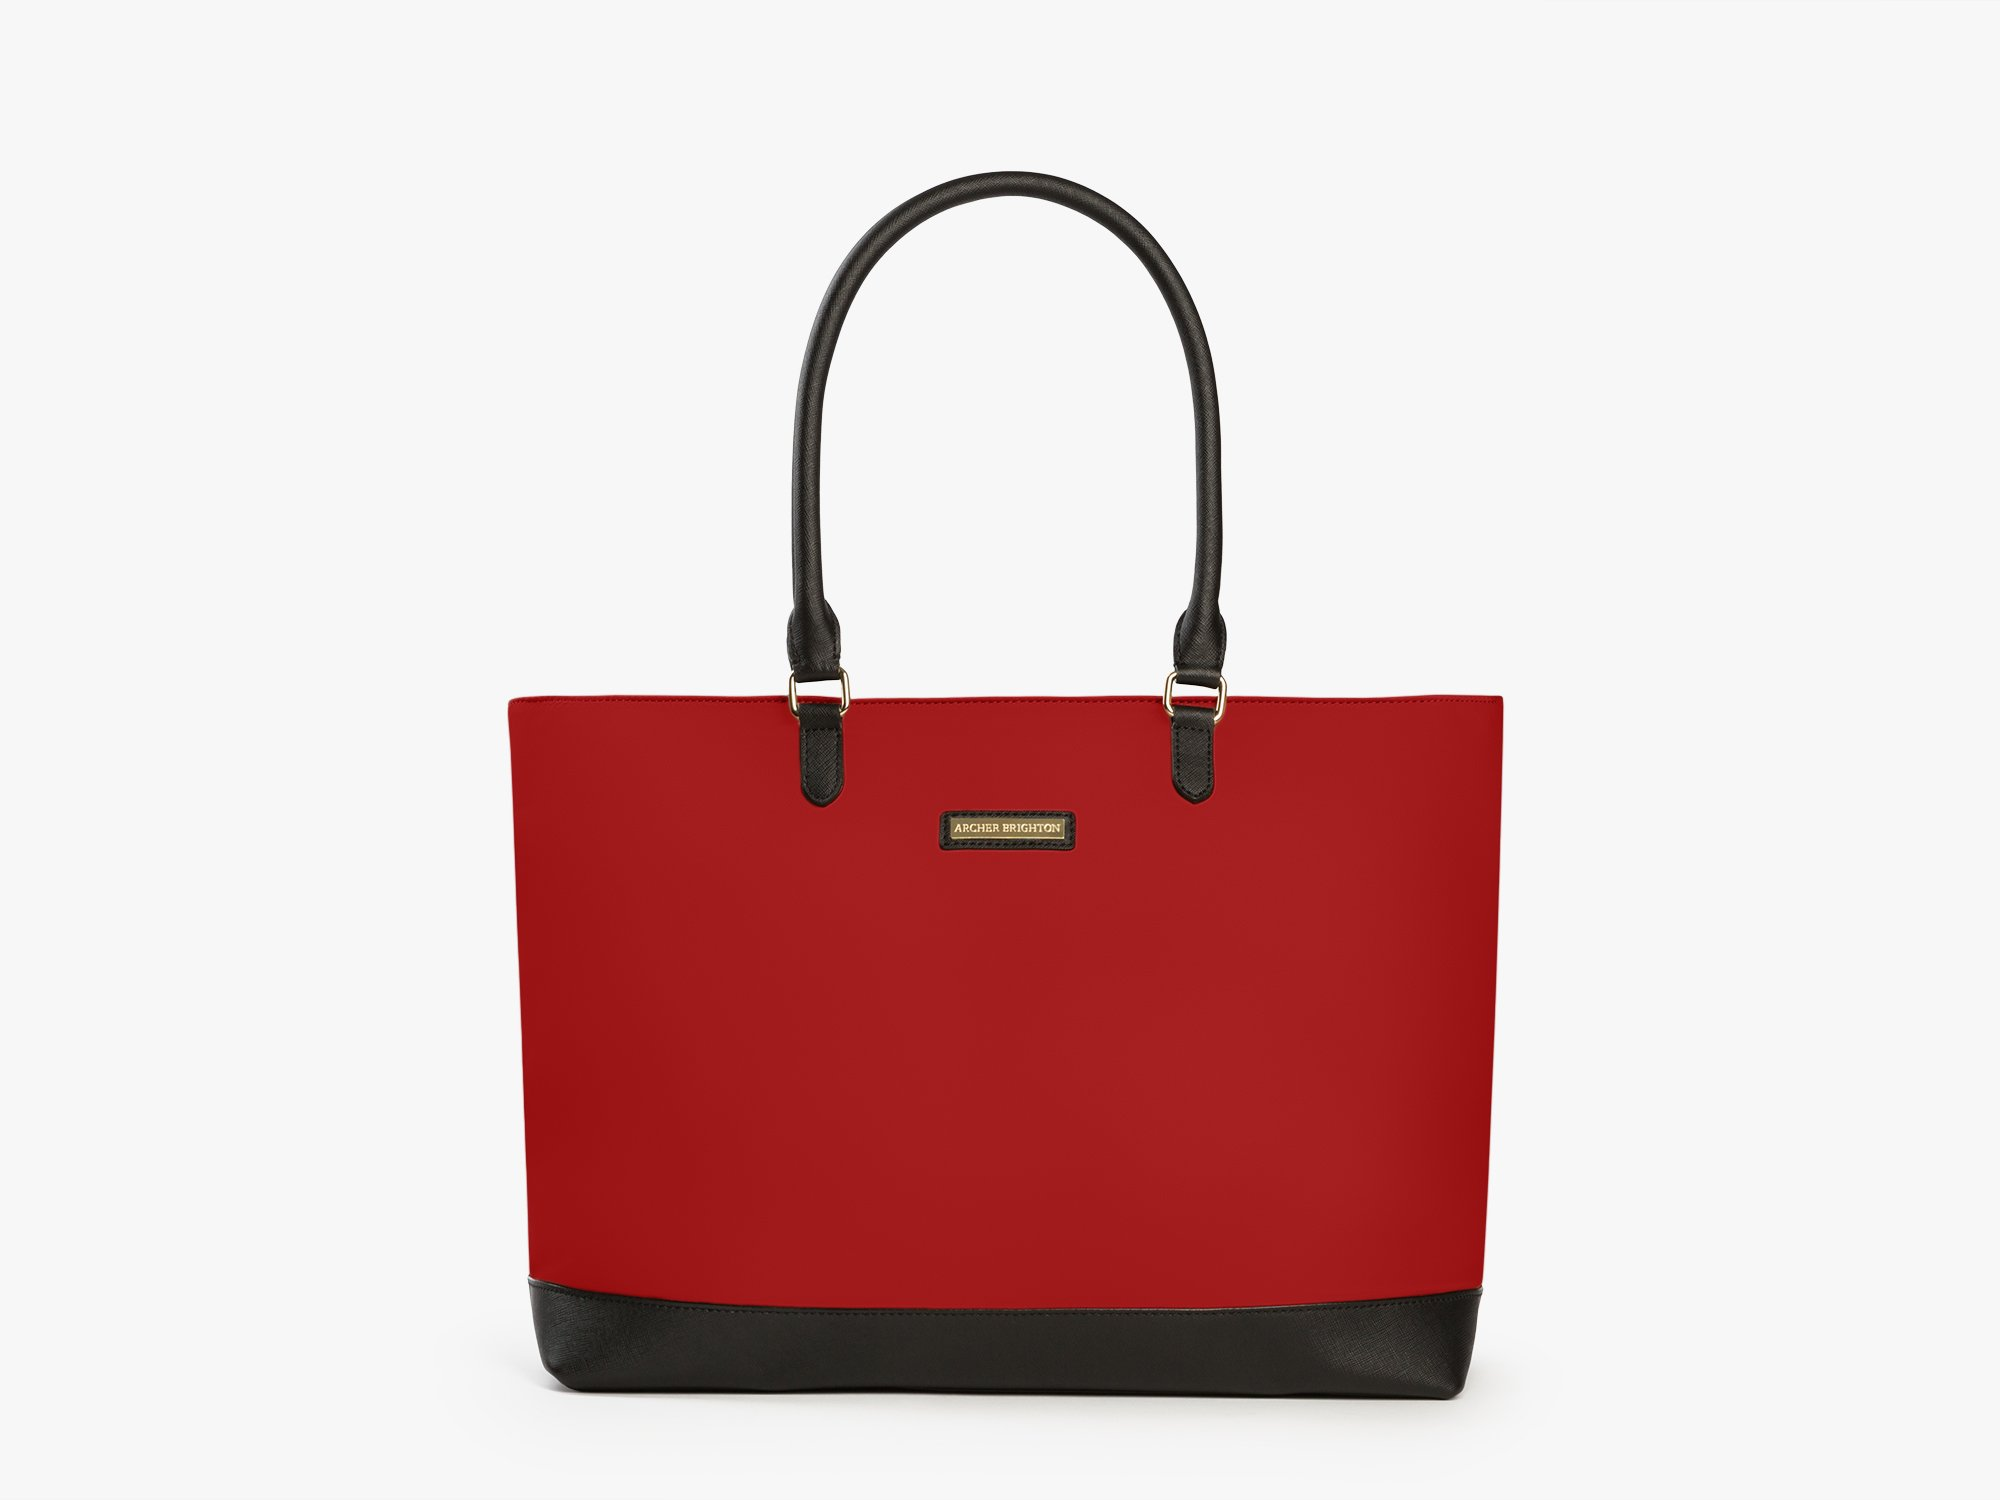 Archer Brighton Isabel Women's Laptop & Tablet Zip Tote, Women's 15.6 & 17 Inch Business Computer Briefcase Bag with Crossbody, Leather Canvas Organizer Handbag Purse for Work, Travel (Red)